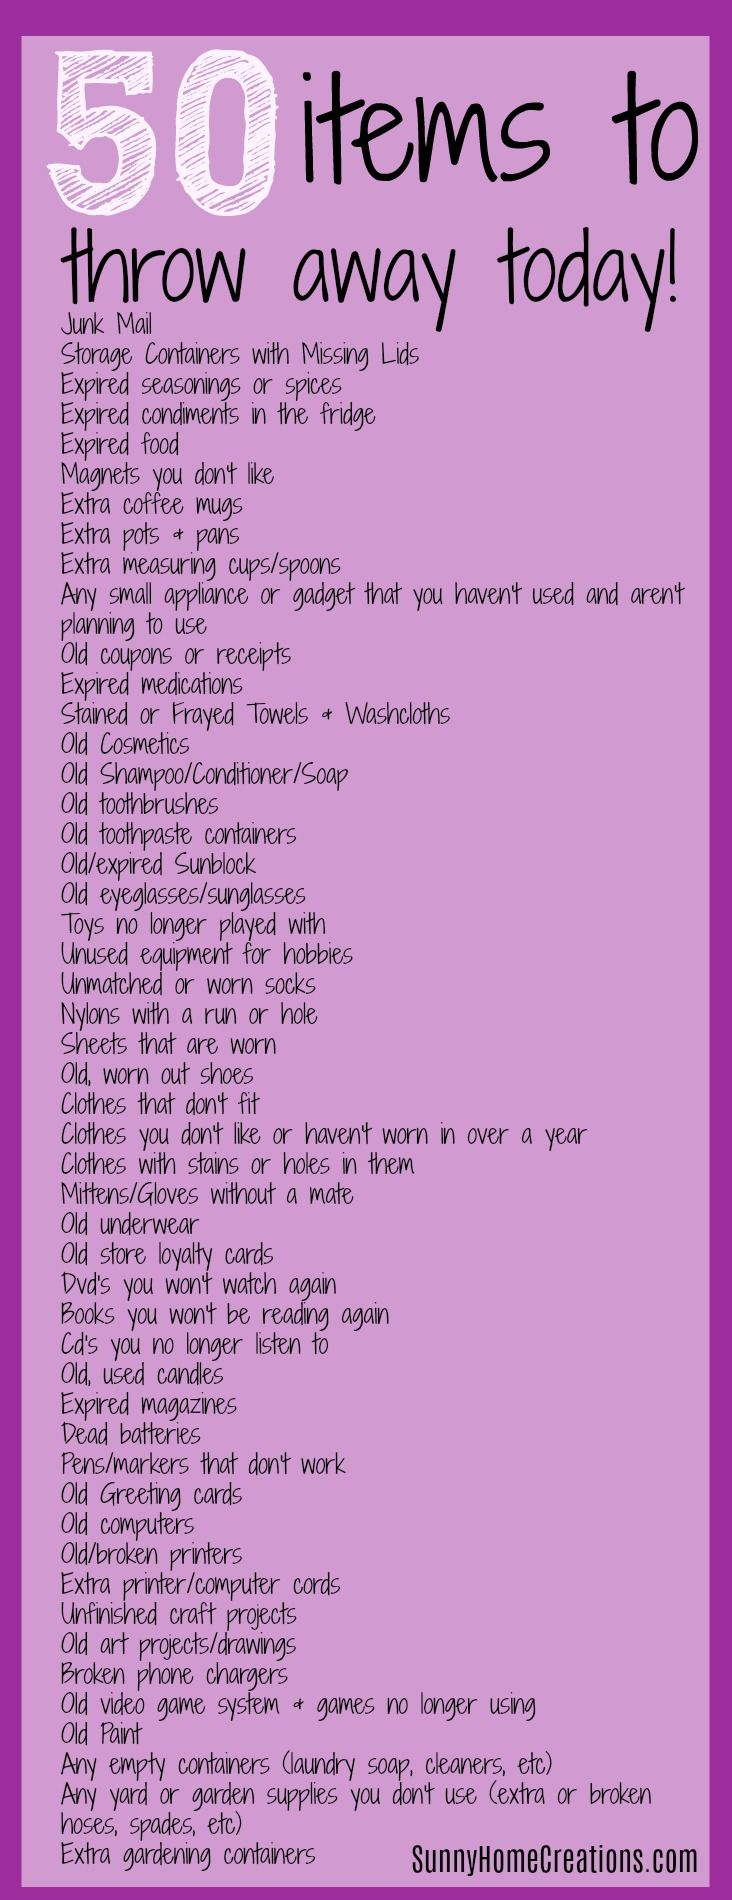 """50 items to throw away today! Are you wondering """"How do I start decluttering?"""" or """"How do you get rid of clutter?"""". Not to worry, here are 50 things you can throw away today so you can start to declutter fast!"""